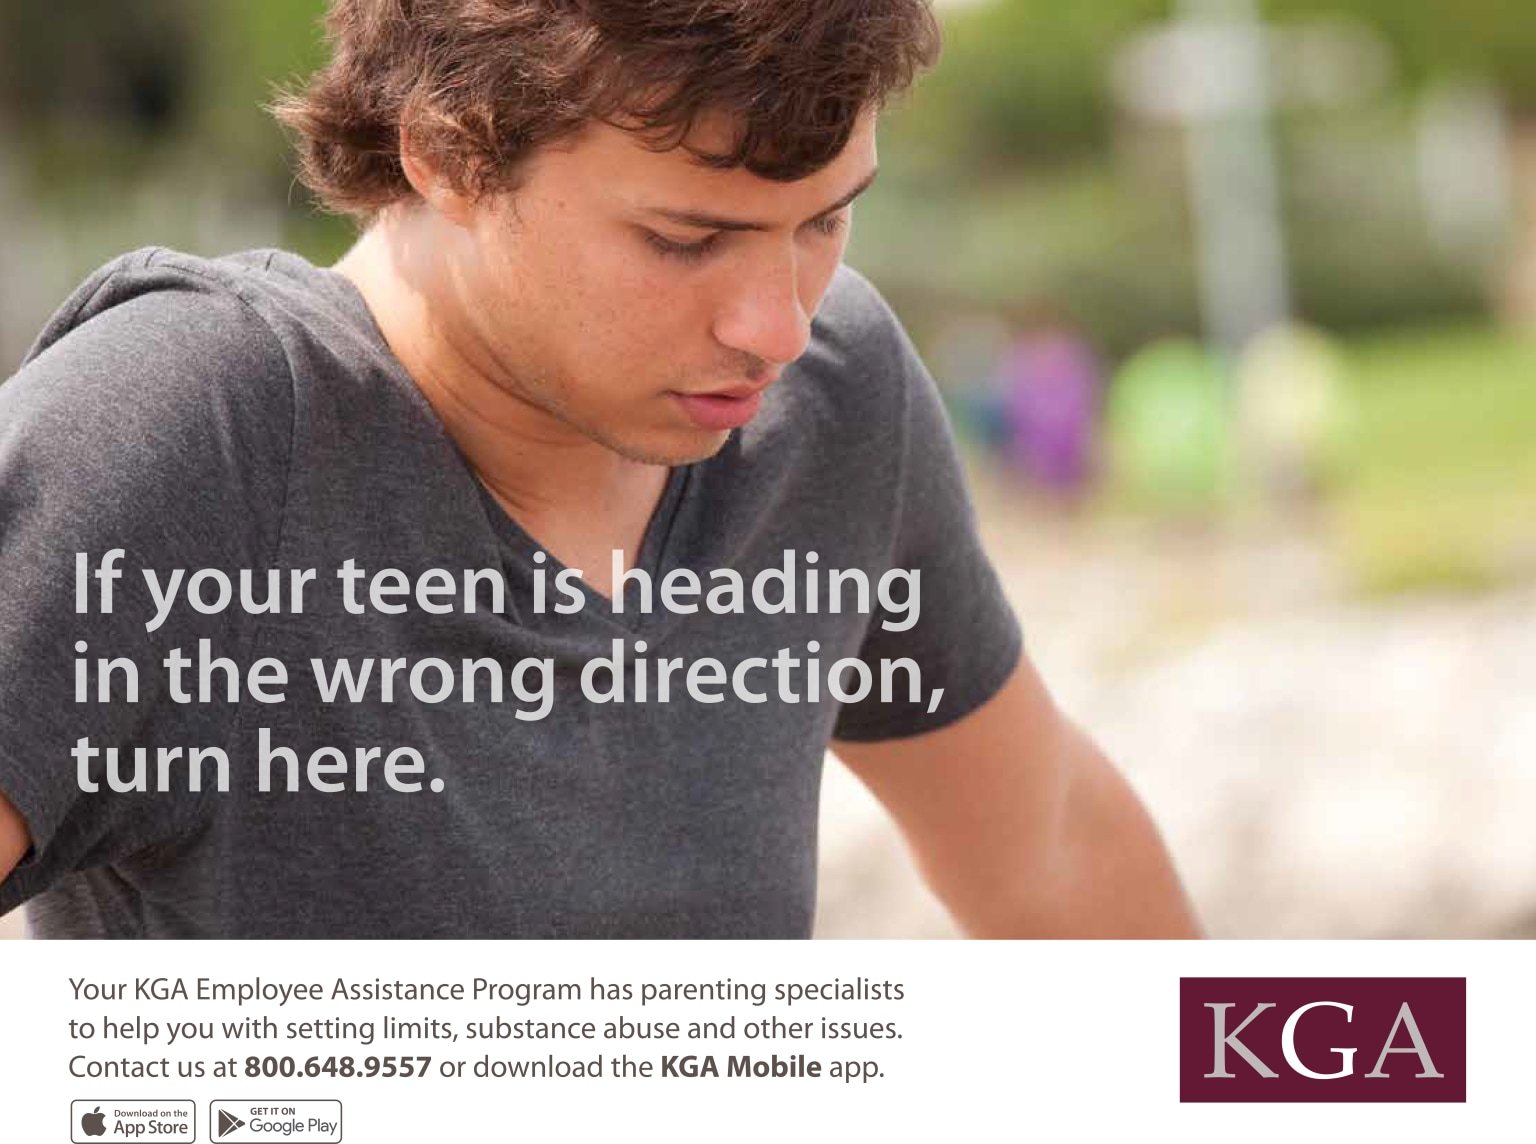 KGA Employee Assistance Poster Campaign